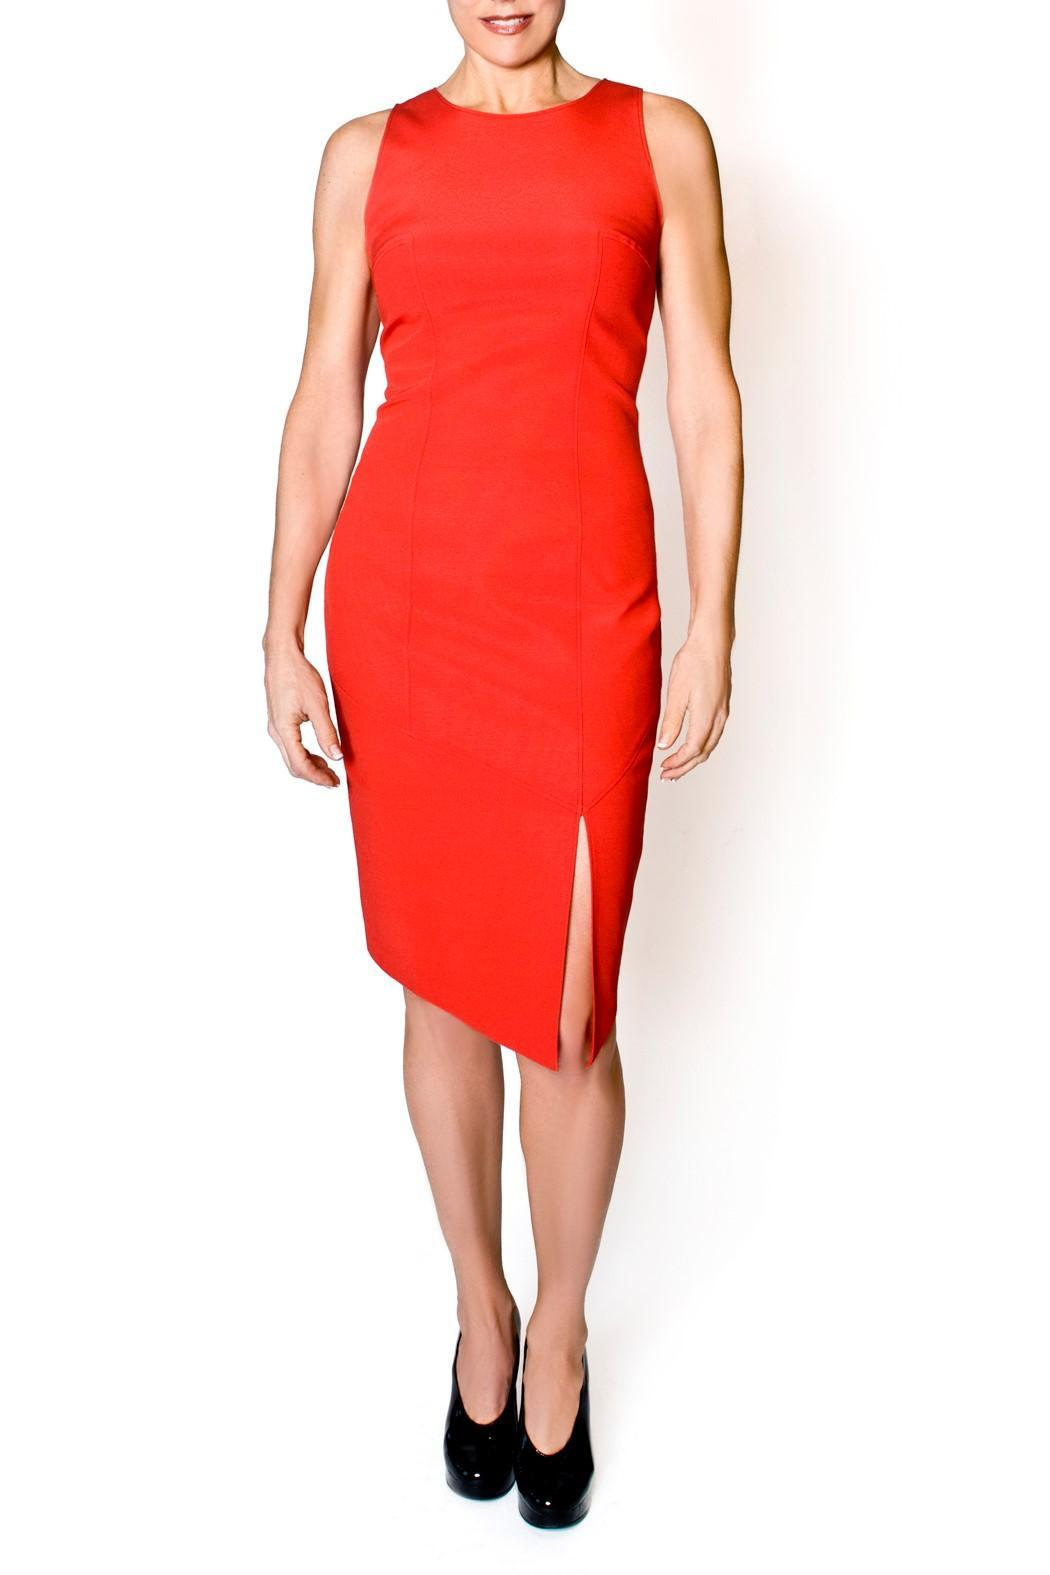 bella Forte Boutique Red Sheath Dress - Main Image